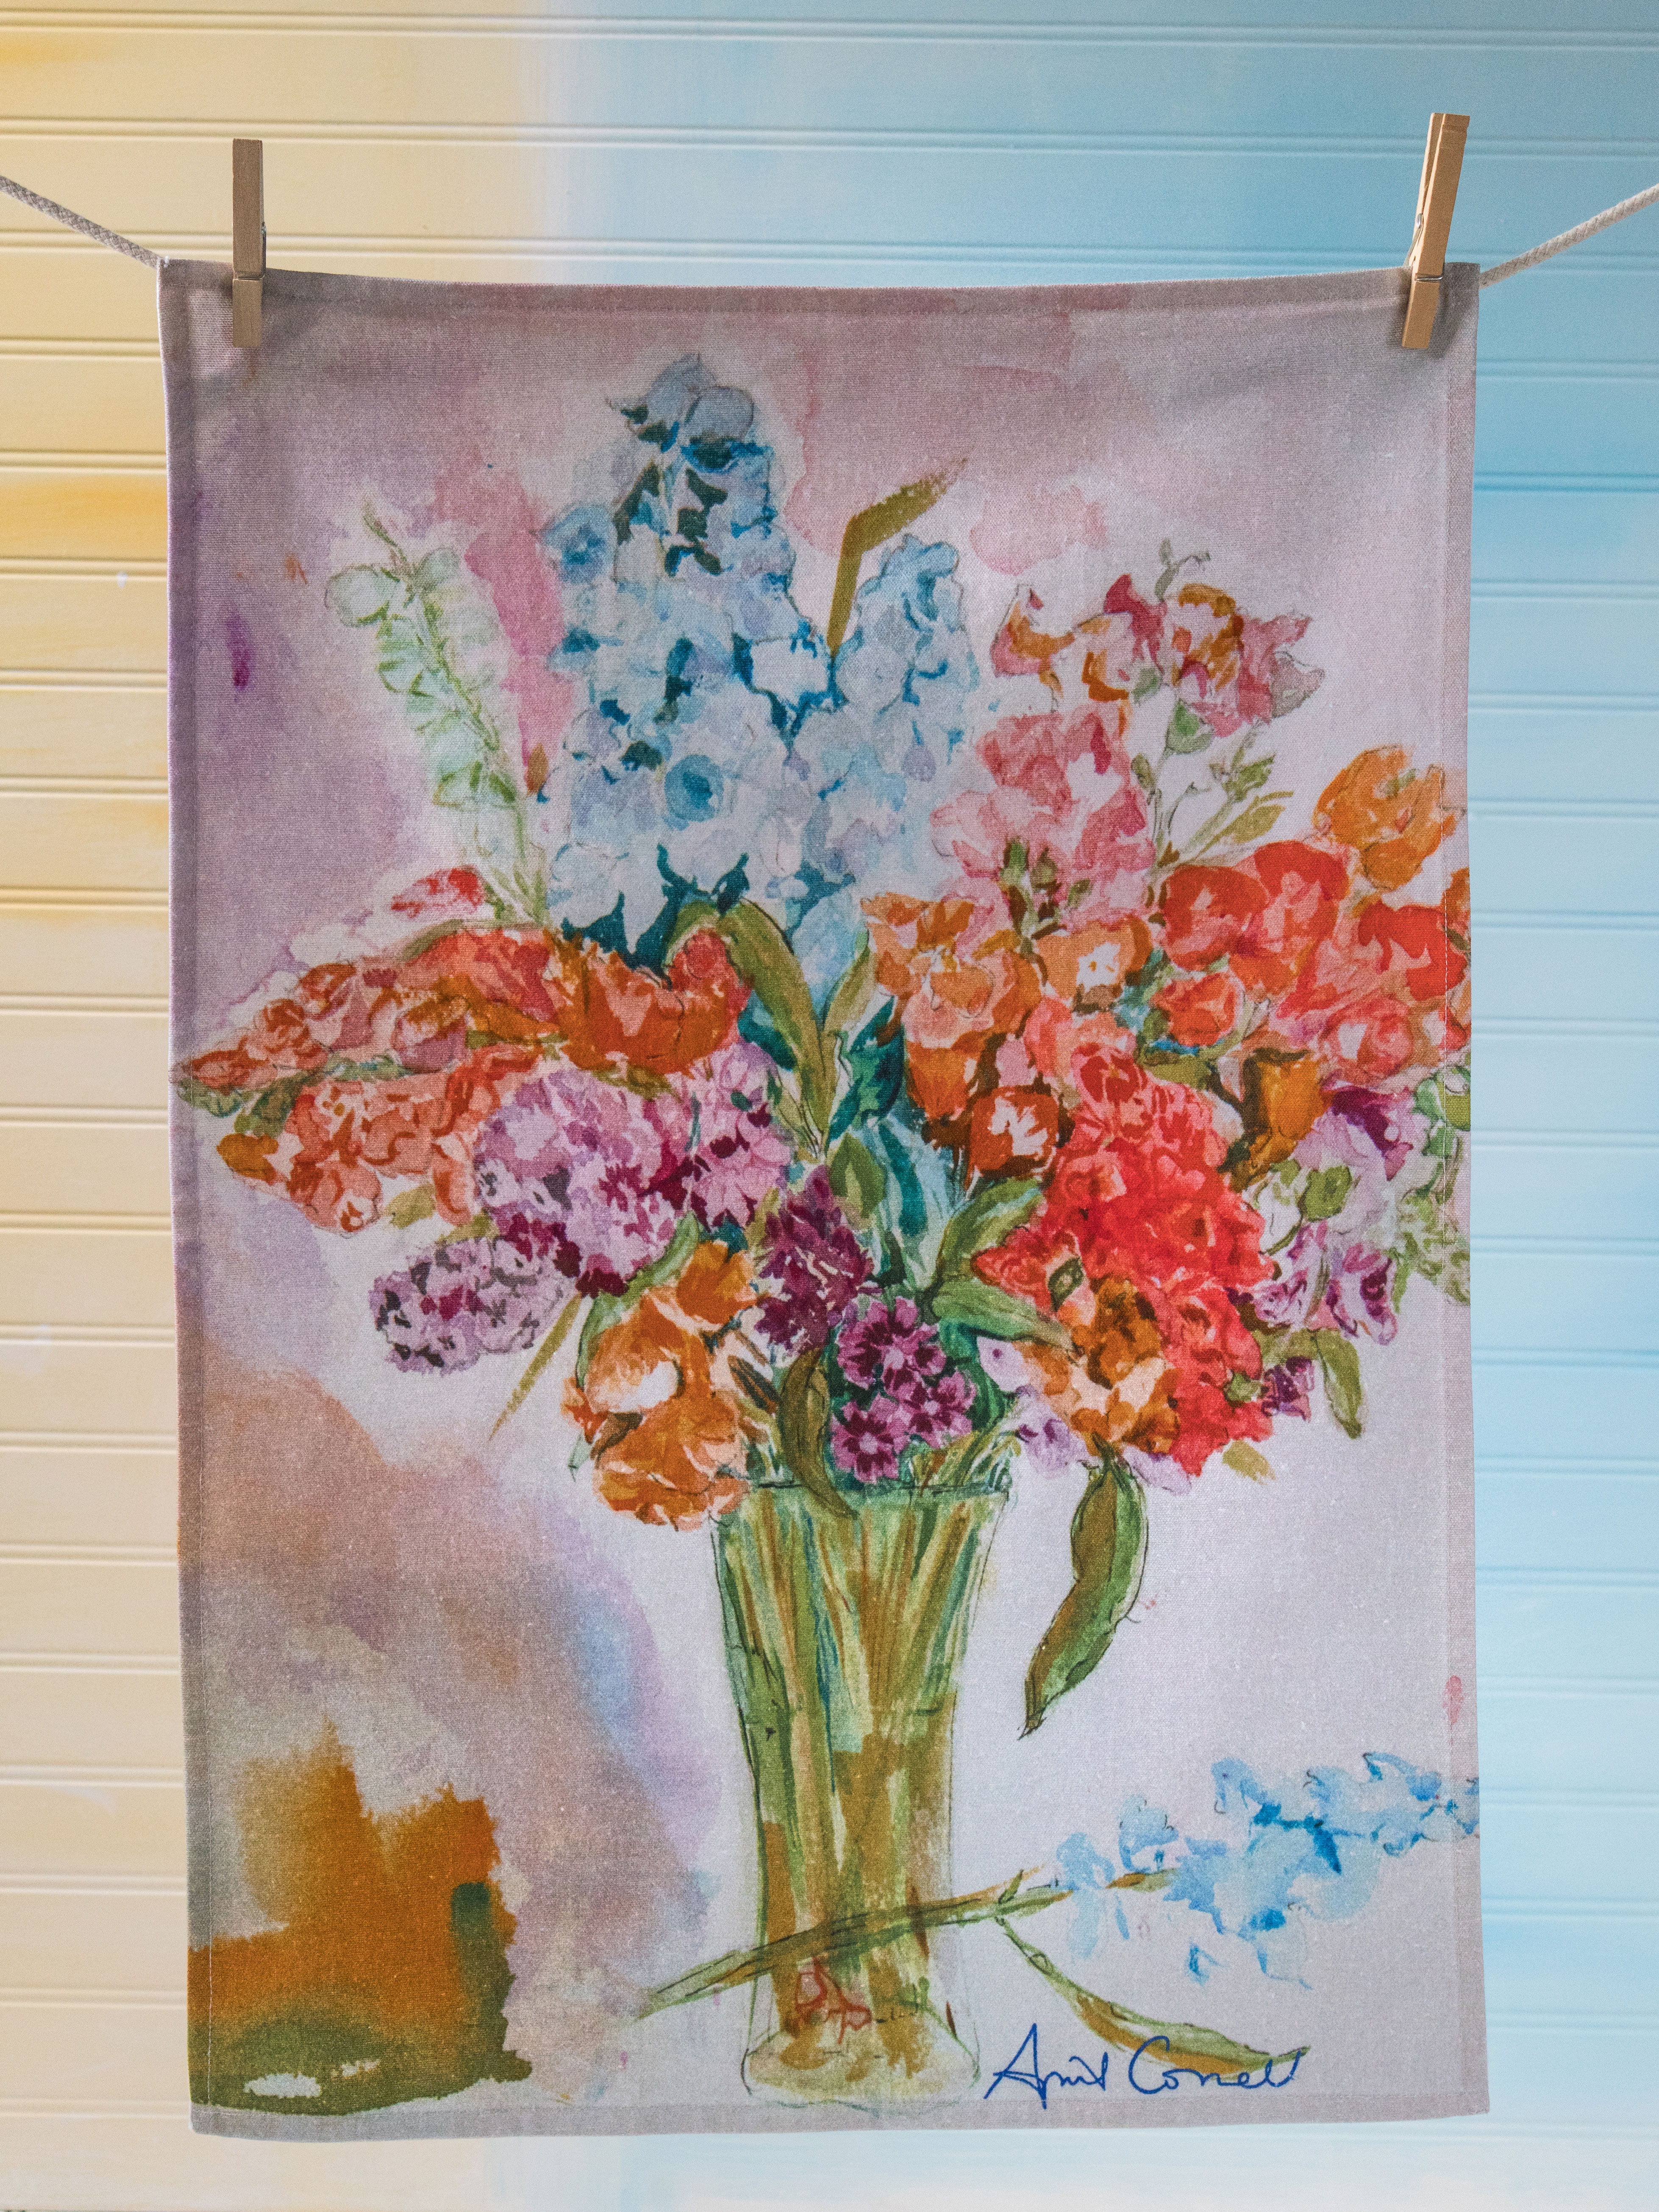 Bountiful bouquet tea towel bountiful bouqet tea towel izmirmasajfo